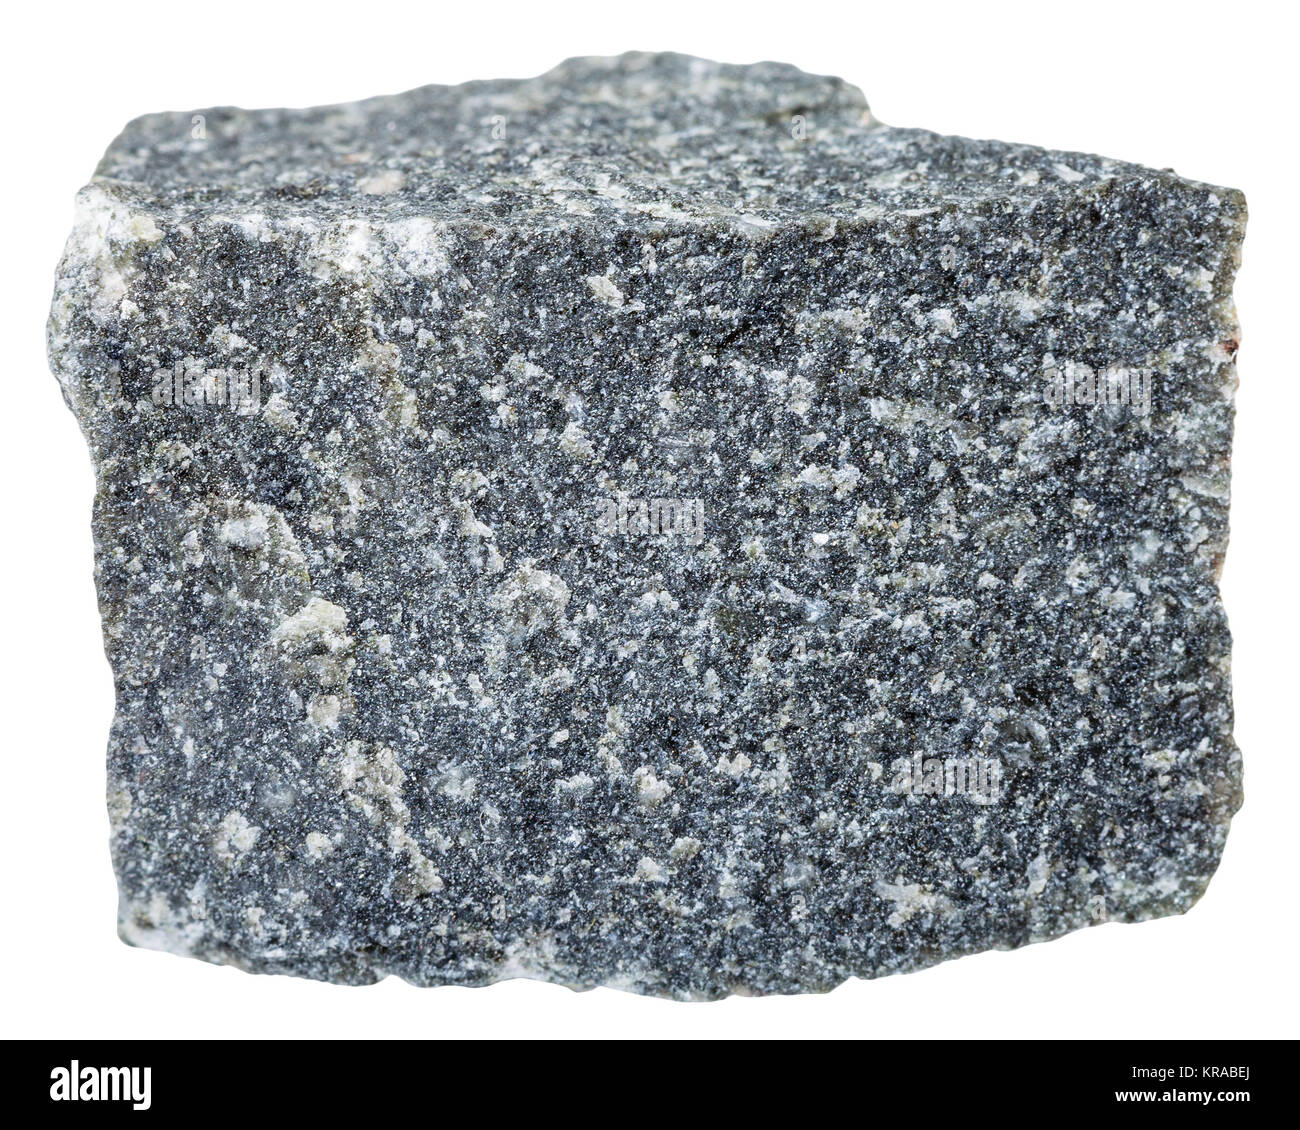 Andesite Igneous Rock Sample Stock Photos & Andesite ...